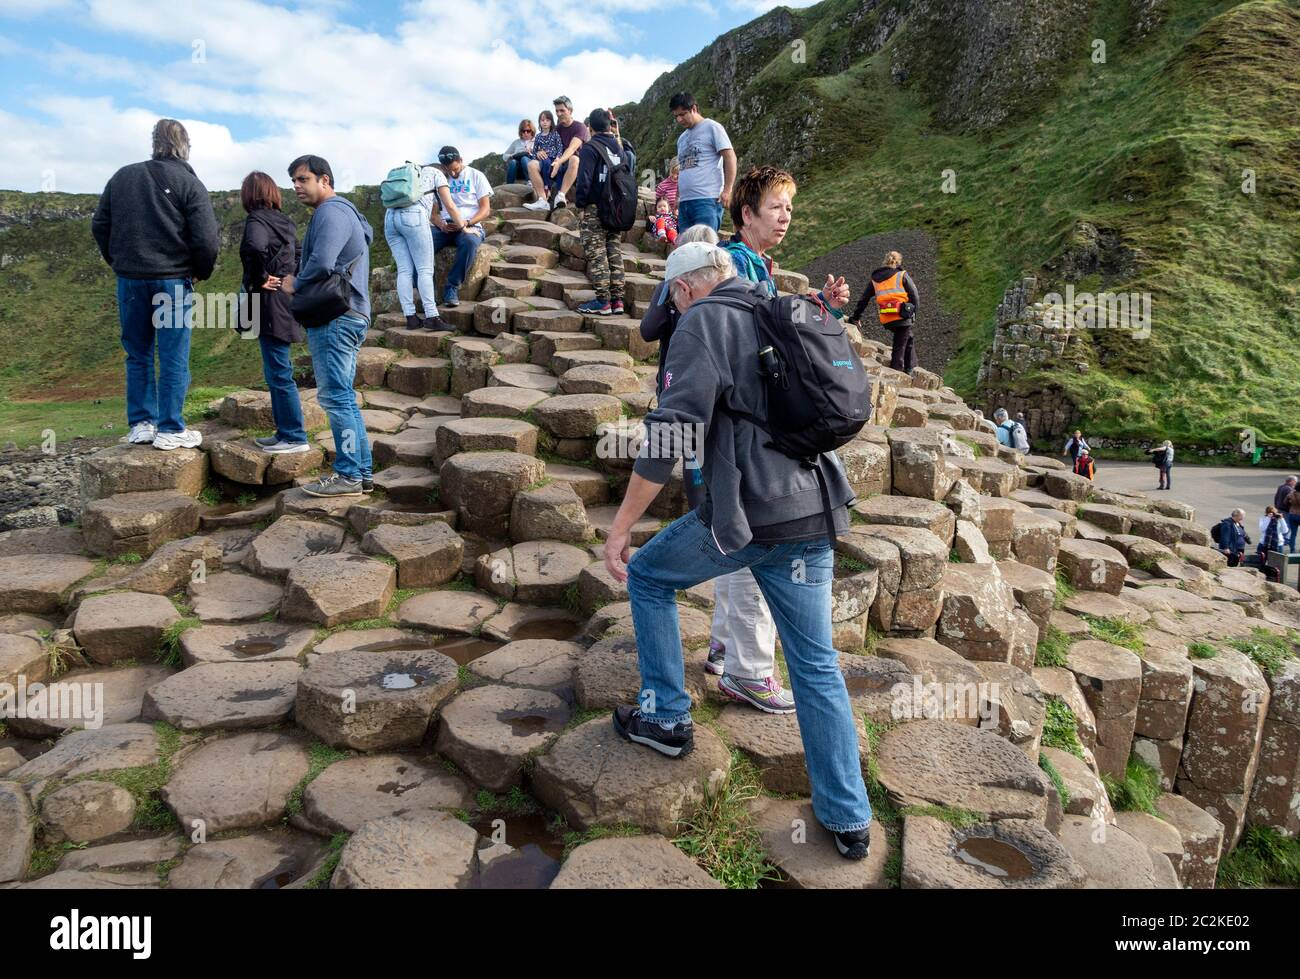 Tourists walking over geometrical basalt columns rock formations at Giant's Causeway, Northern Ireland, Europe Stock Photo